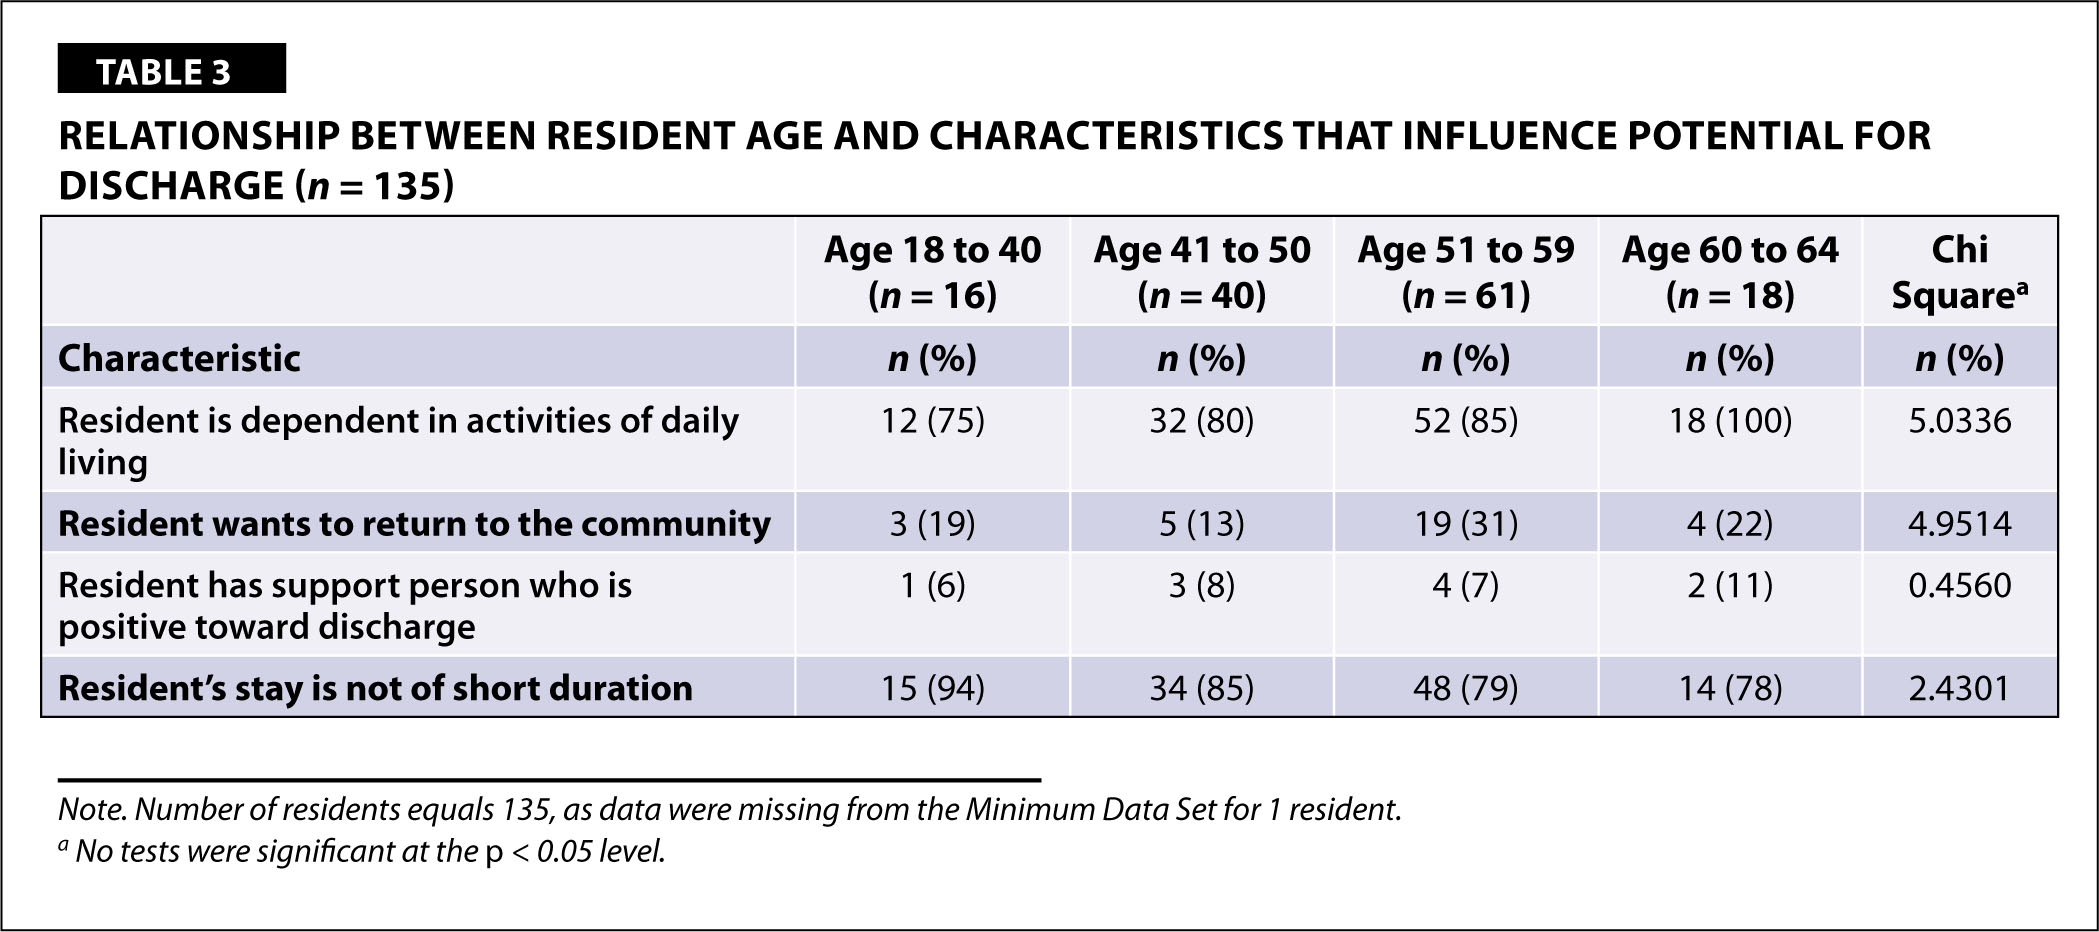 Relationship Between Resident Age and Characteristics that Influence Potential for Discharge (n = 135)